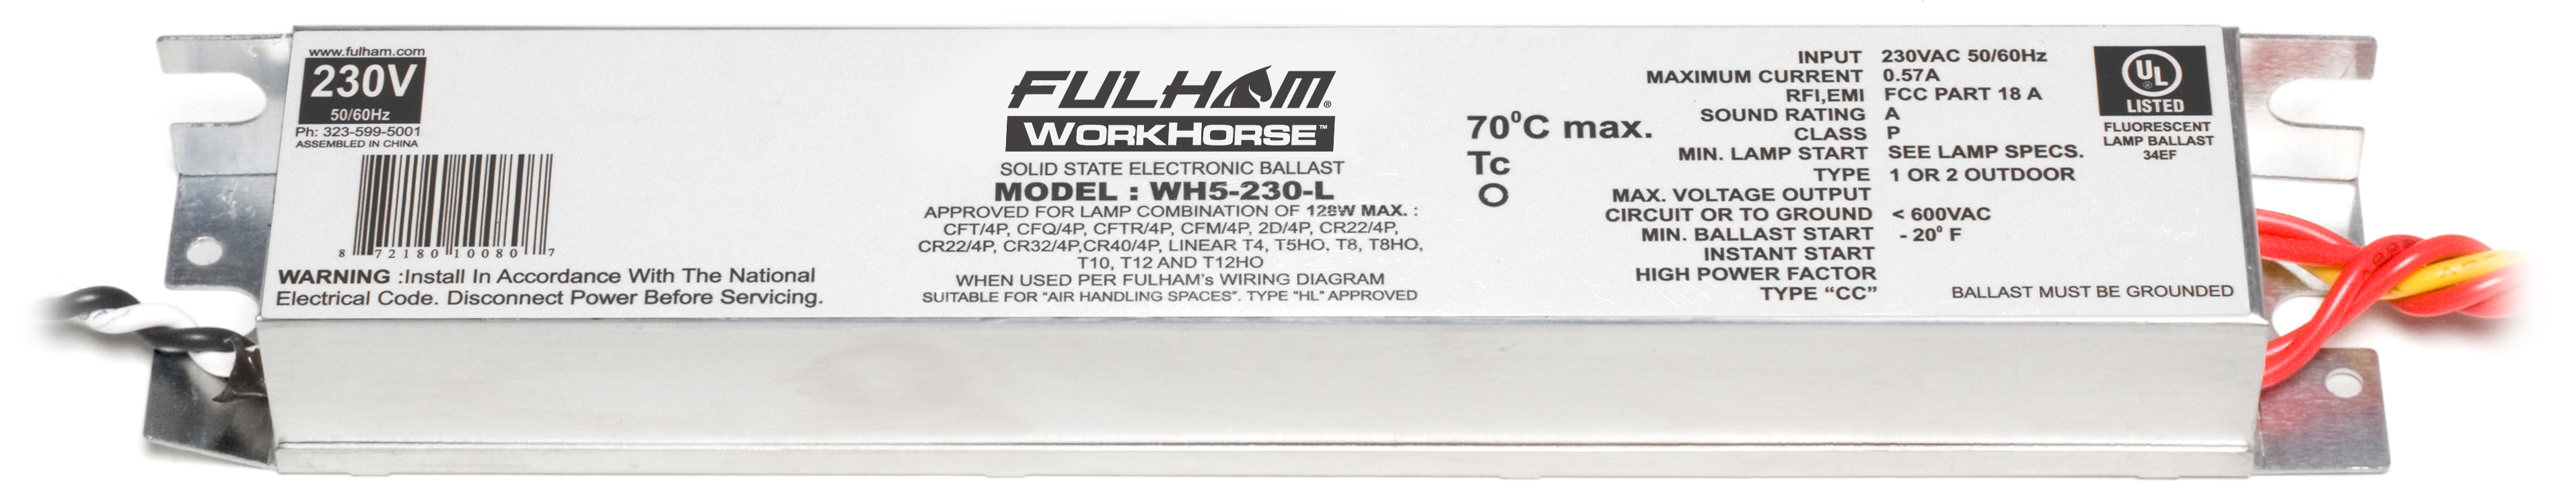 Fulham North Coast Electric 4 Light Rapid Start Ballast Wiring Diagram Fulhamwh5 230 Lworkhorse 5 230v Linear Model W